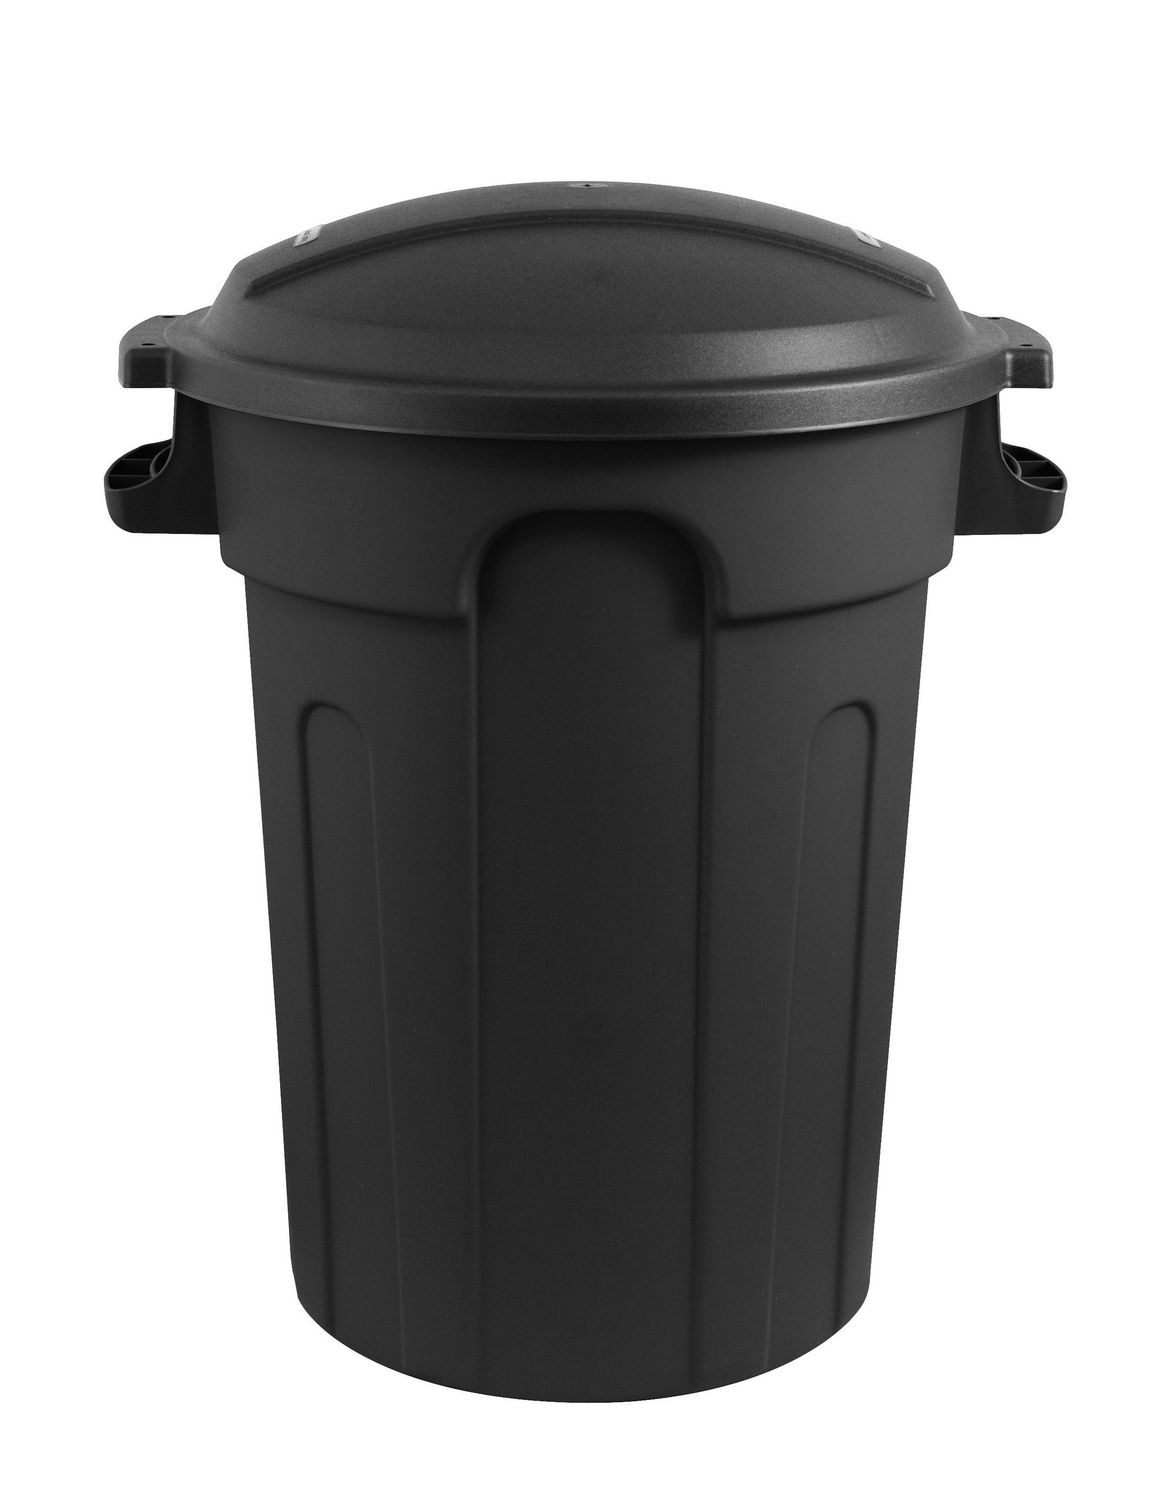 Garbage Bins Walmart Gracious Living Garbage Container With Domed Lid